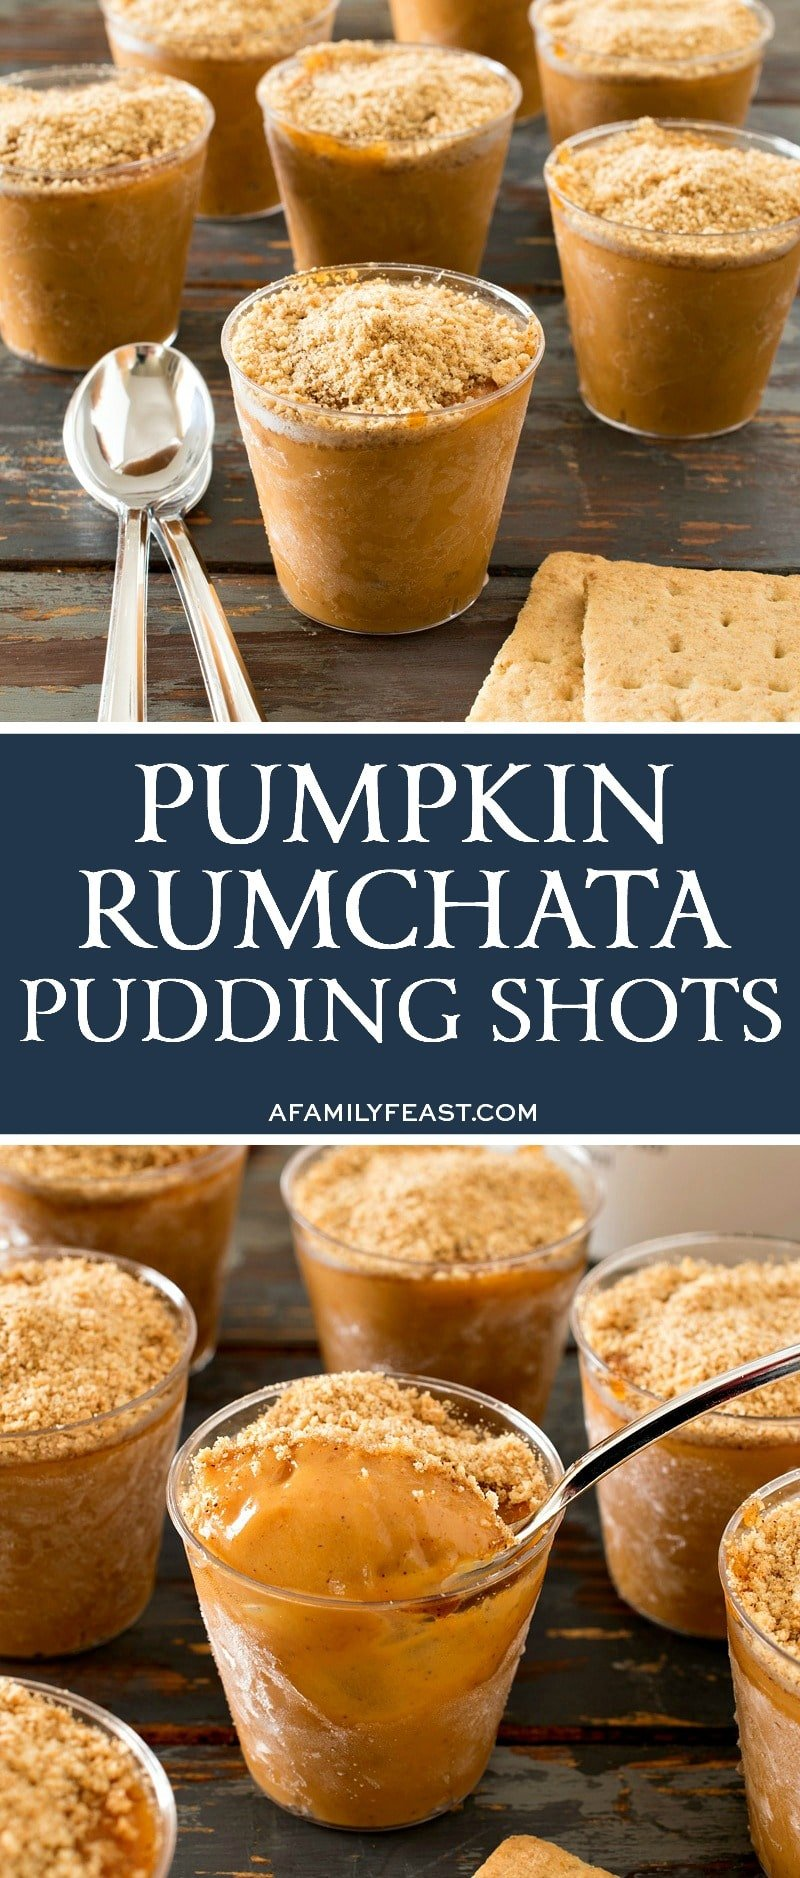 Pumpkin Rumchata Pudding Shots